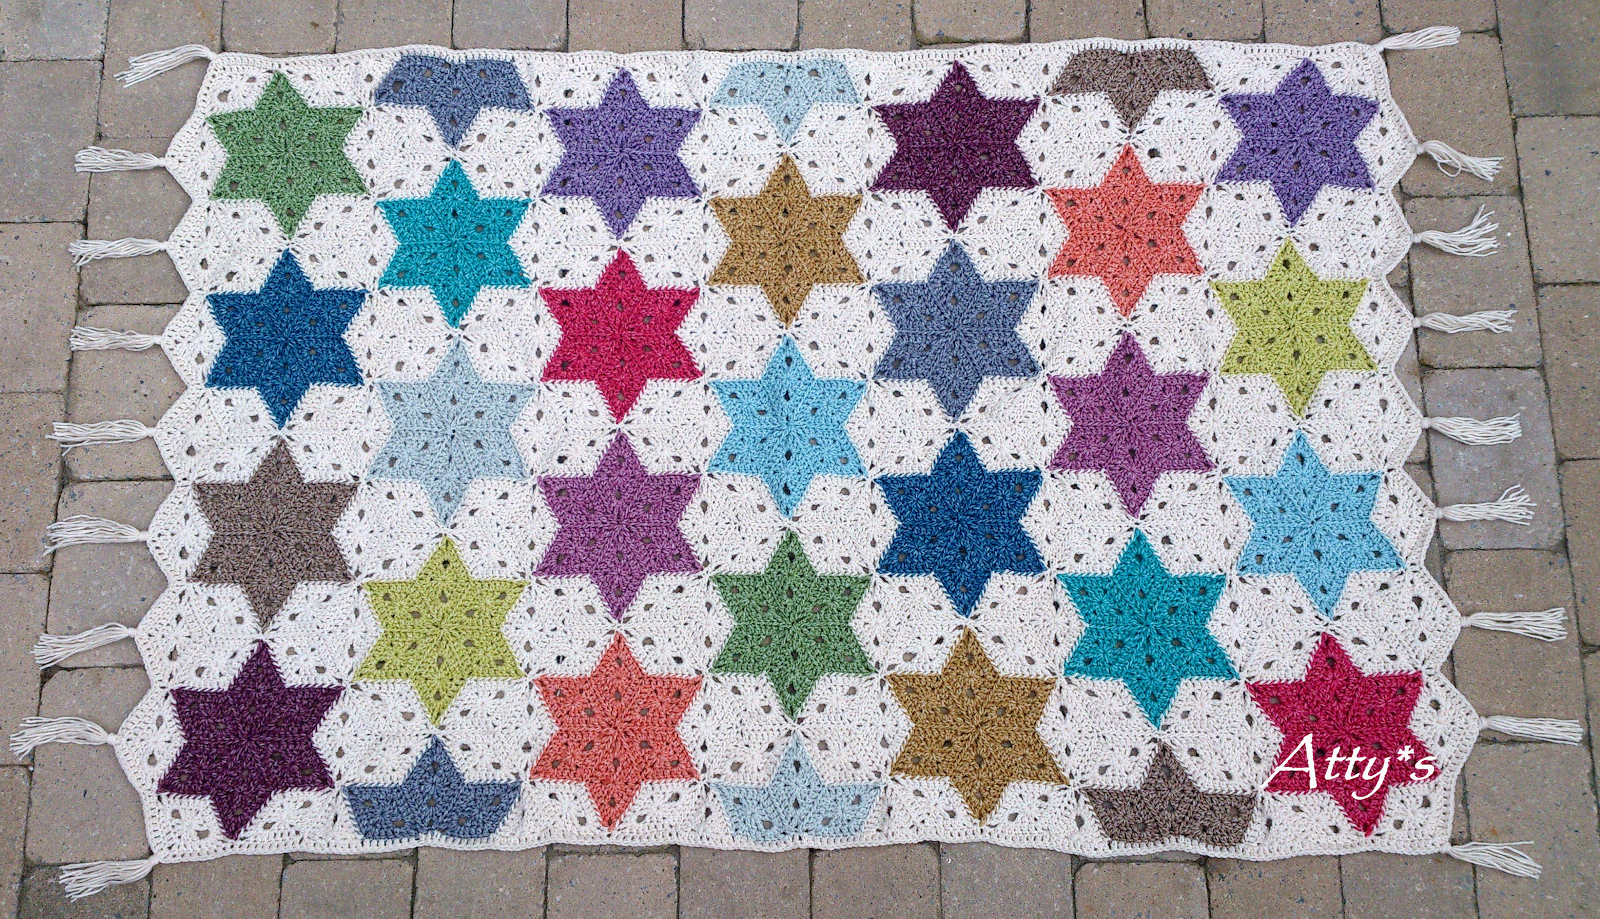 atty\'s: Finished Star Blanket